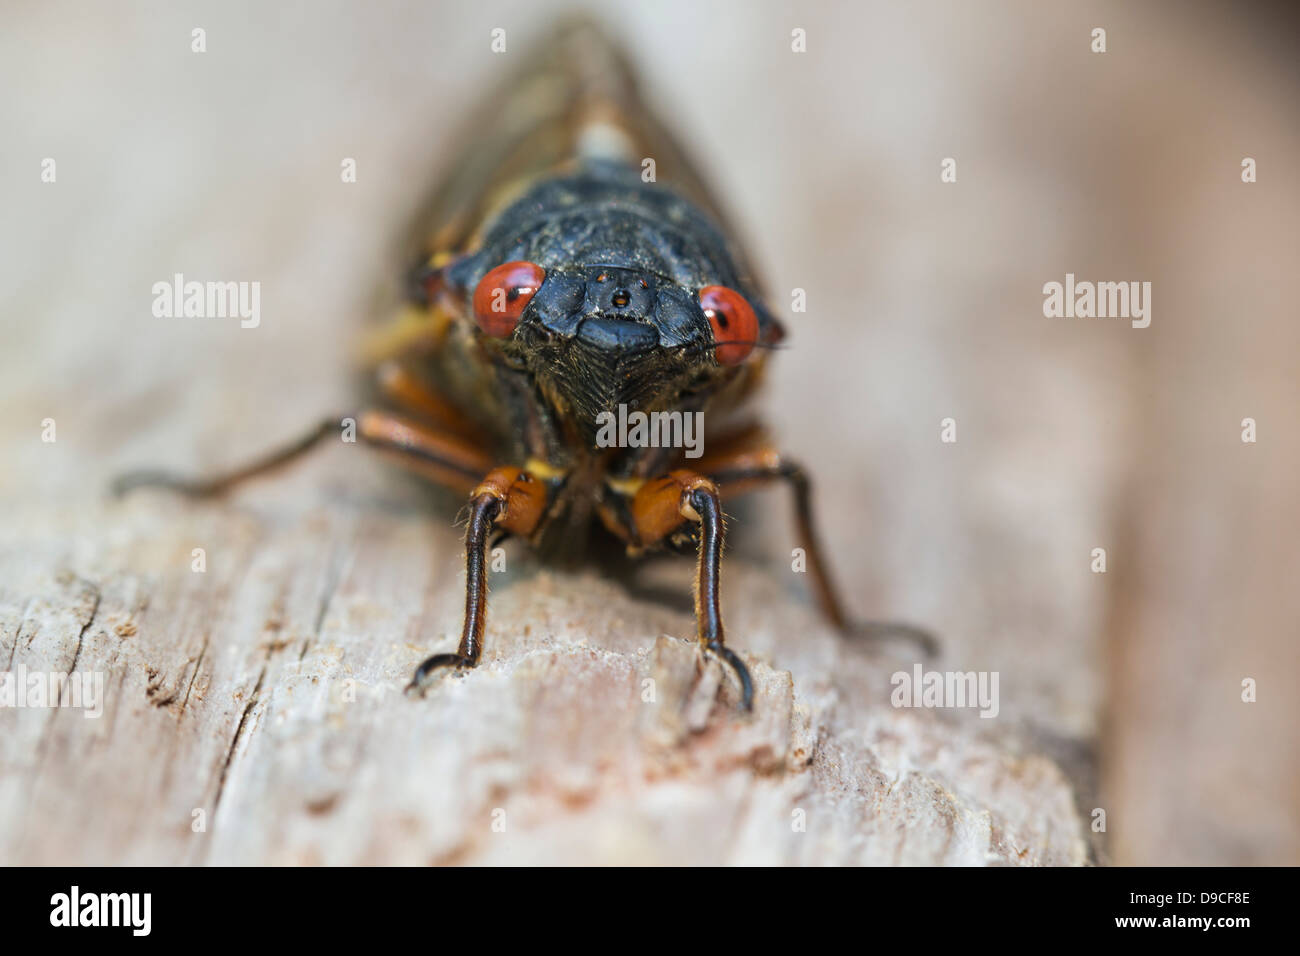 Close-up of Periodical Cicada (Magicicada sp.) also know as the 17-year Periodical Cicadas of eastern North America. - Stock Image